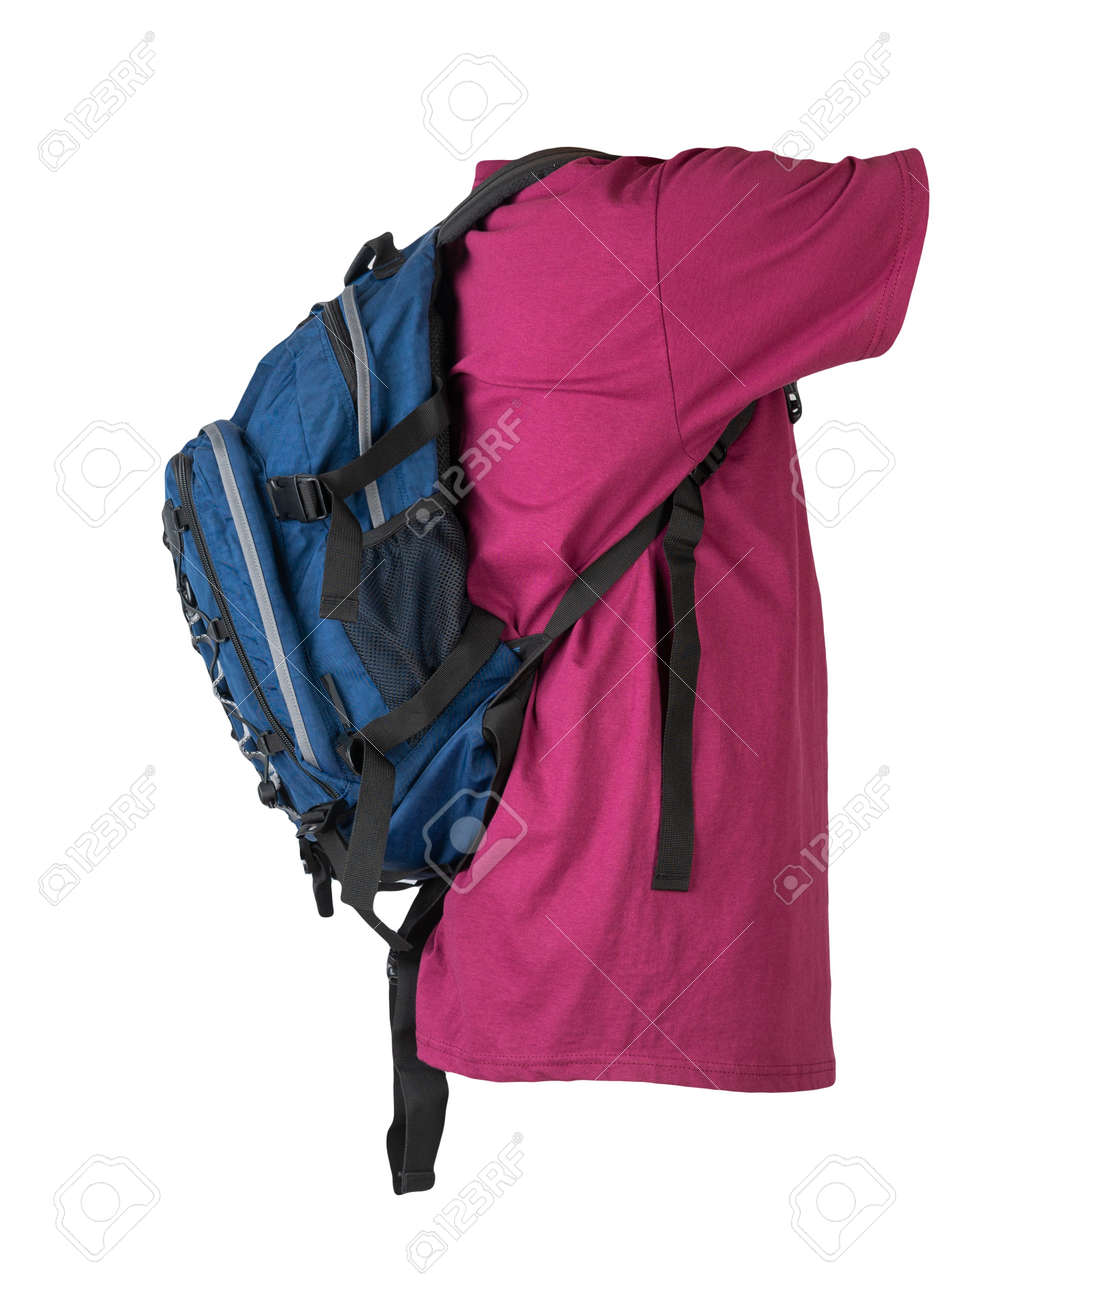 dark blue backpack dressed for burgundy t-shirt isolated on a white background. - 172073900